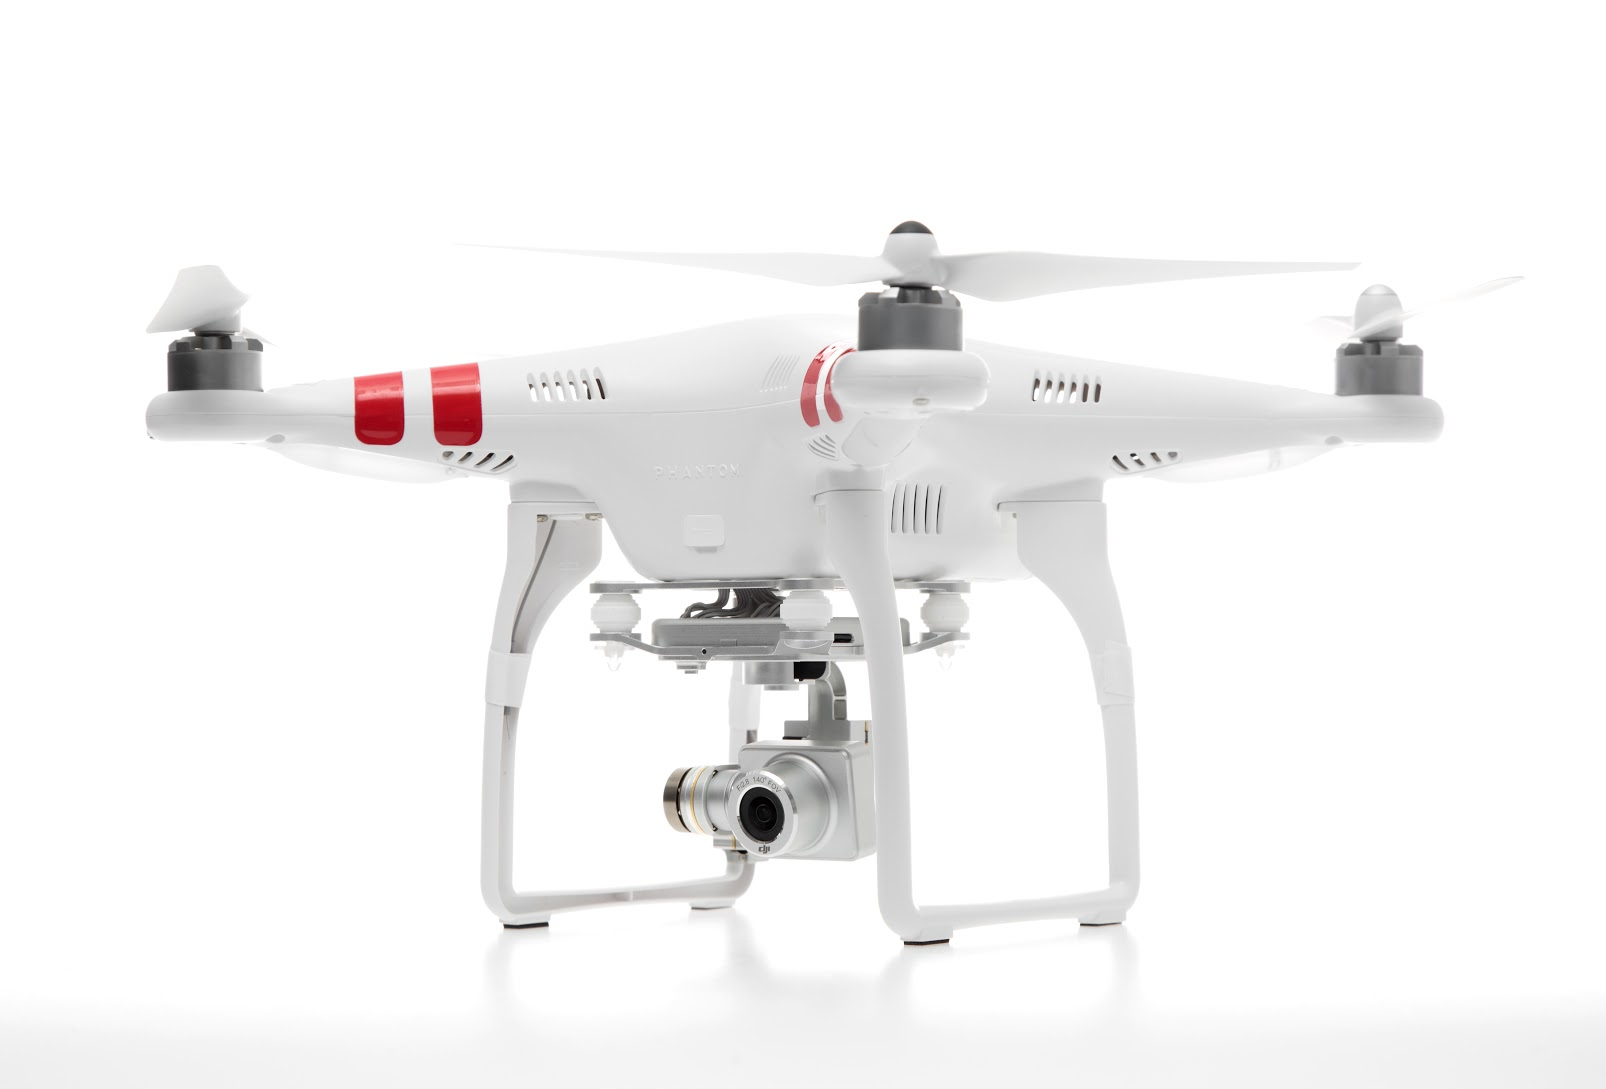 The new Solo from 3D Robotic (above) - purely for GoPros but will control one totally. The new Phantom 3 from DJI (below)with many tricks up its sleeve like a 720p stream direct to YouTube from a company who maybe worth $10 billion soon.